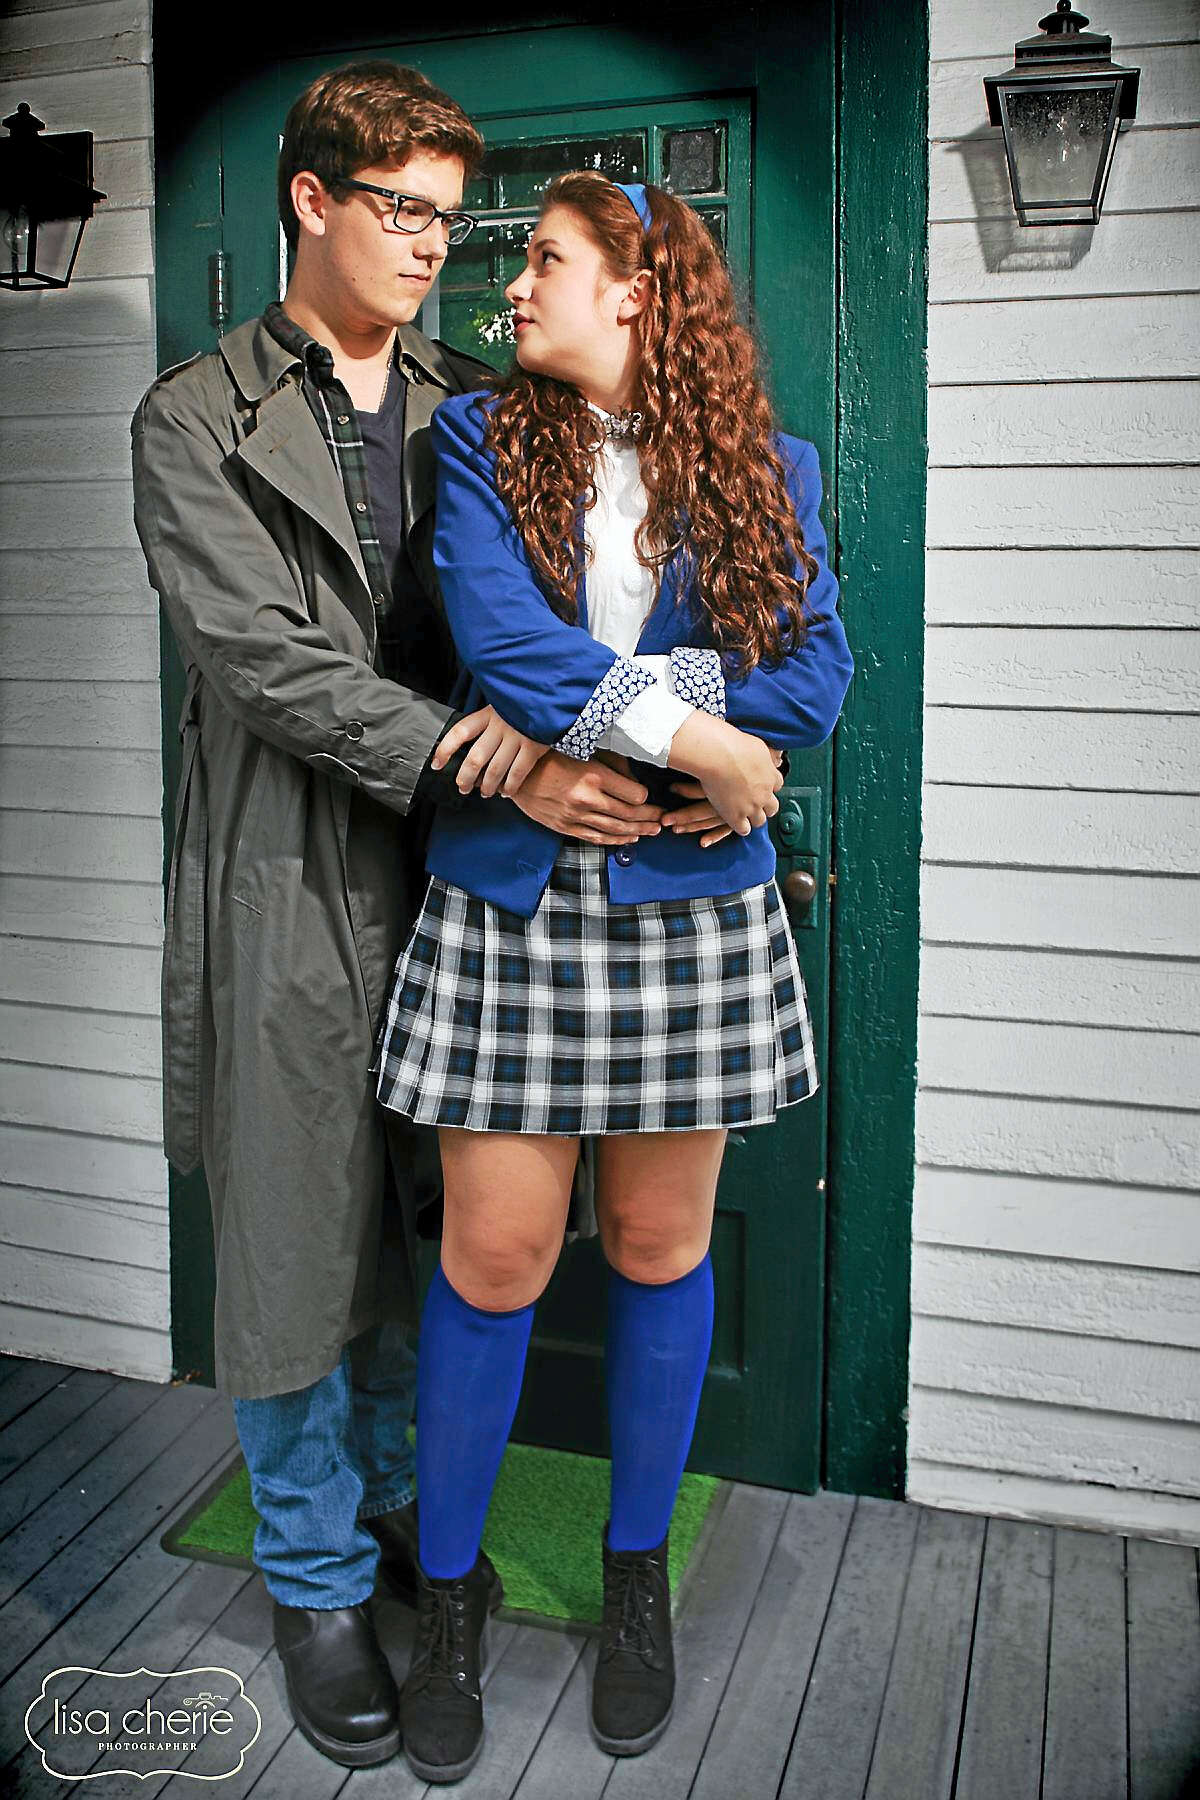 Lisa Cherie PhotographyRyan Glander (J.D.) embraces Isabella Riccio (Veronica) in a scene from Heathers.